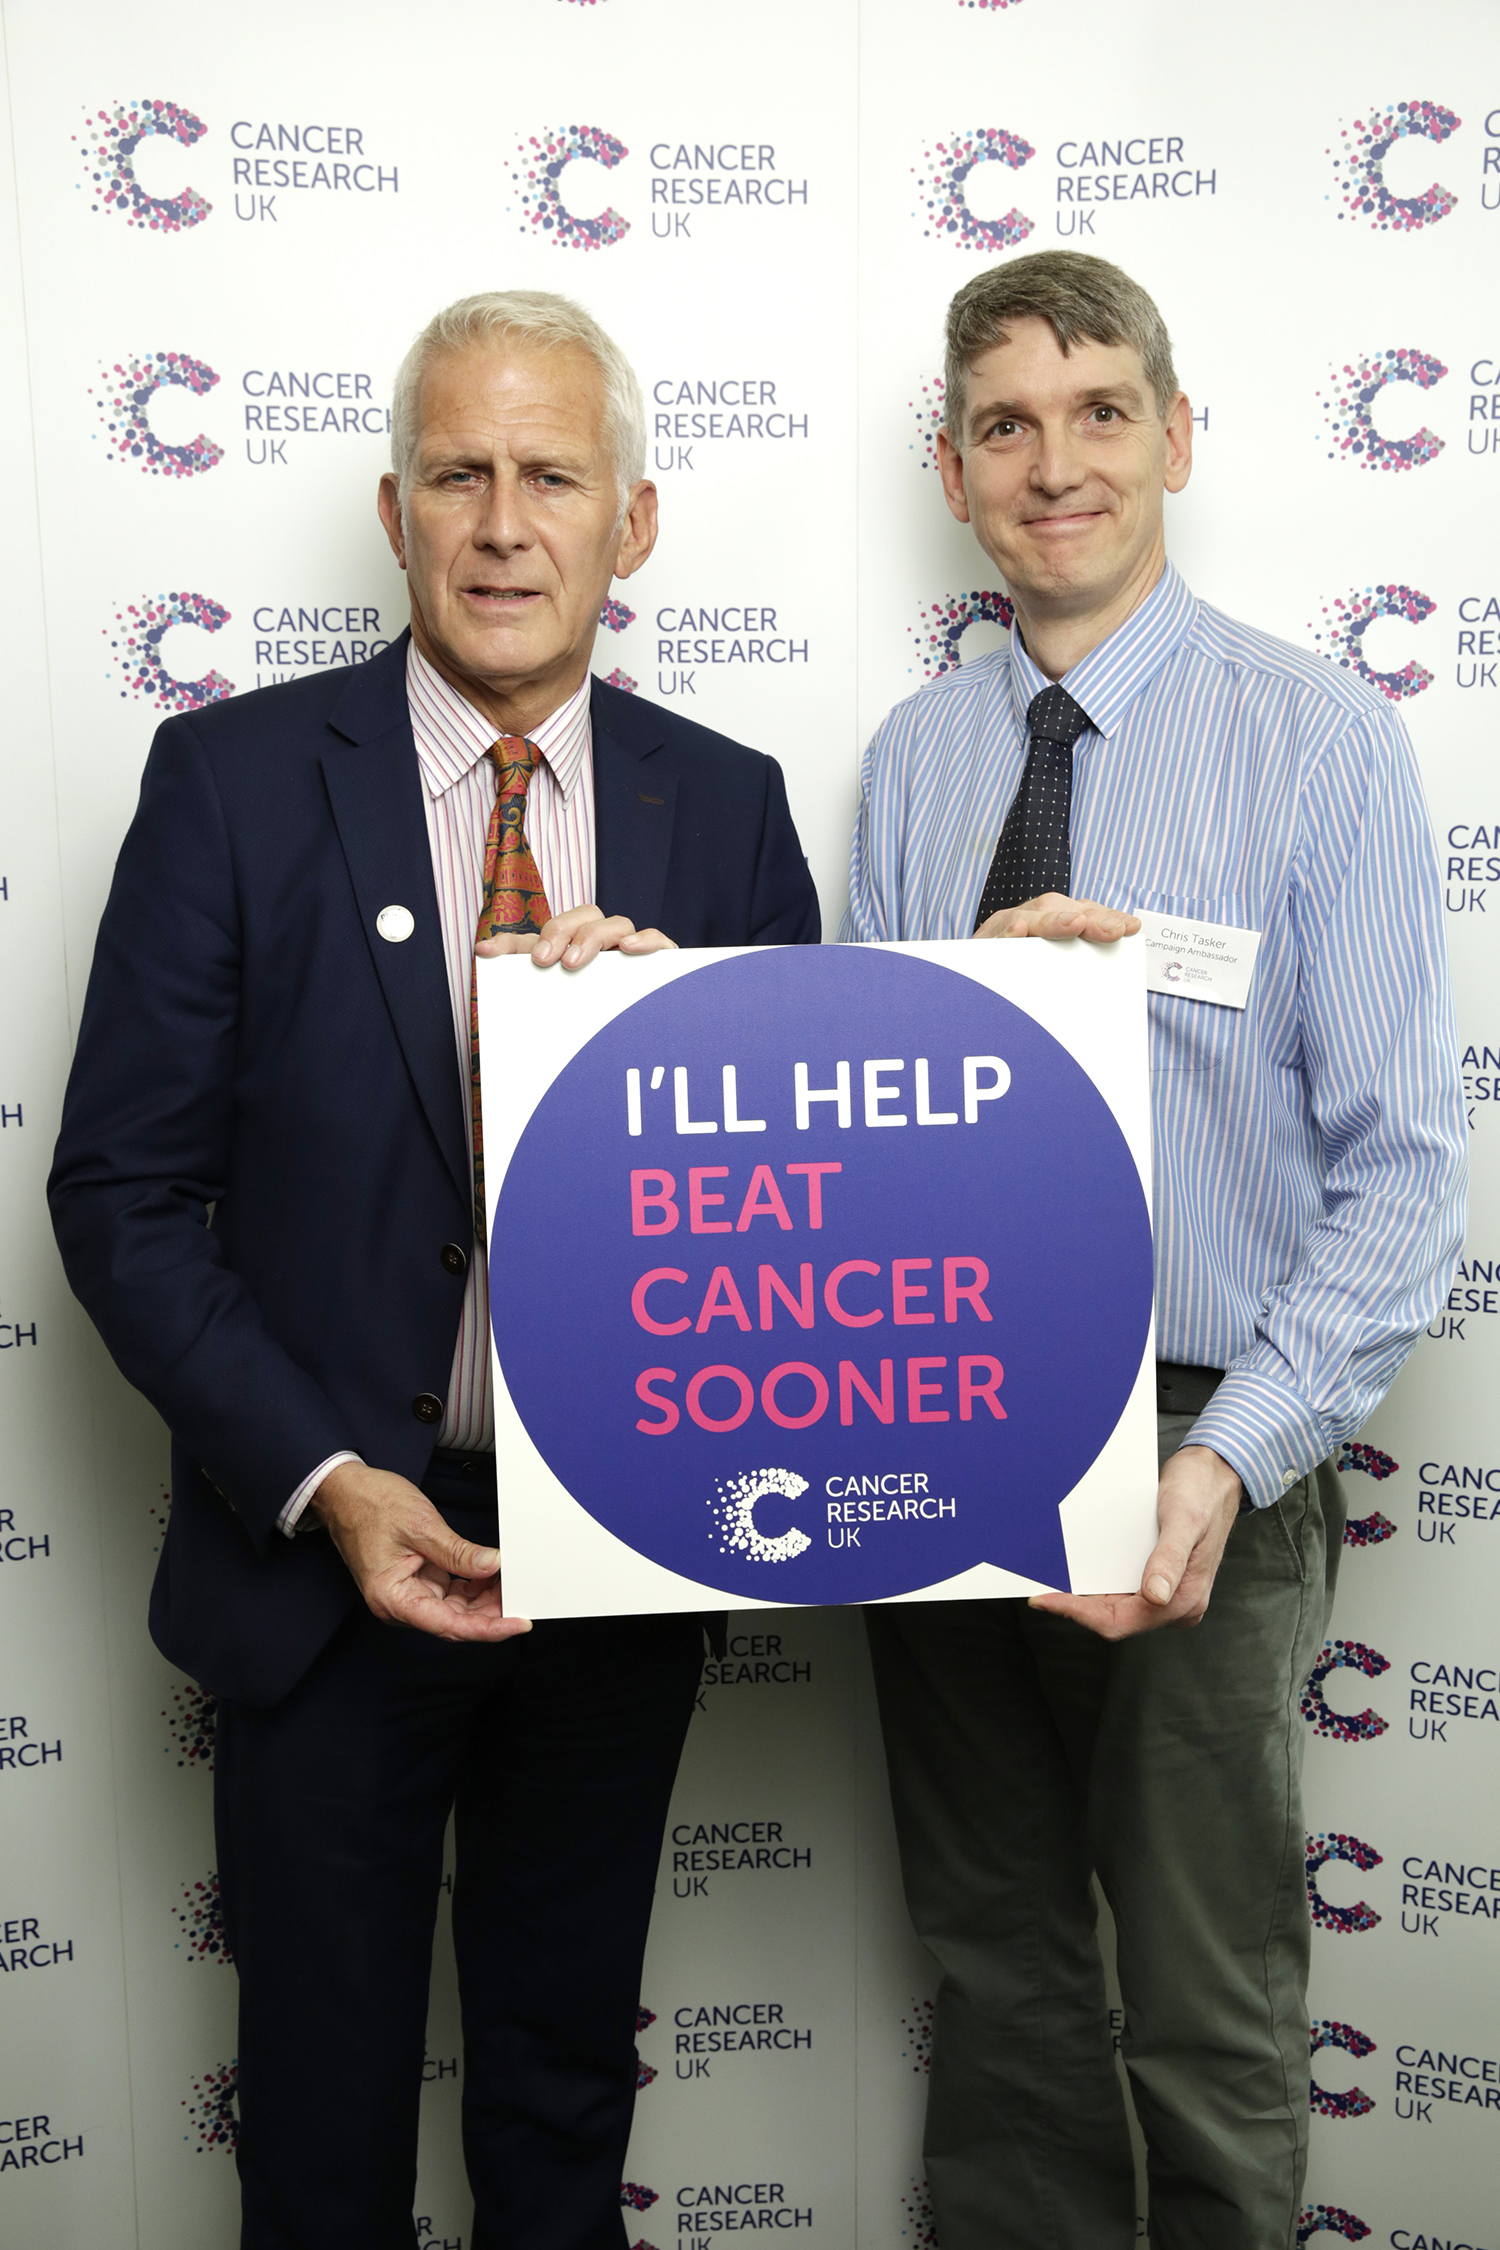 Cancer_Research_UK.jpg